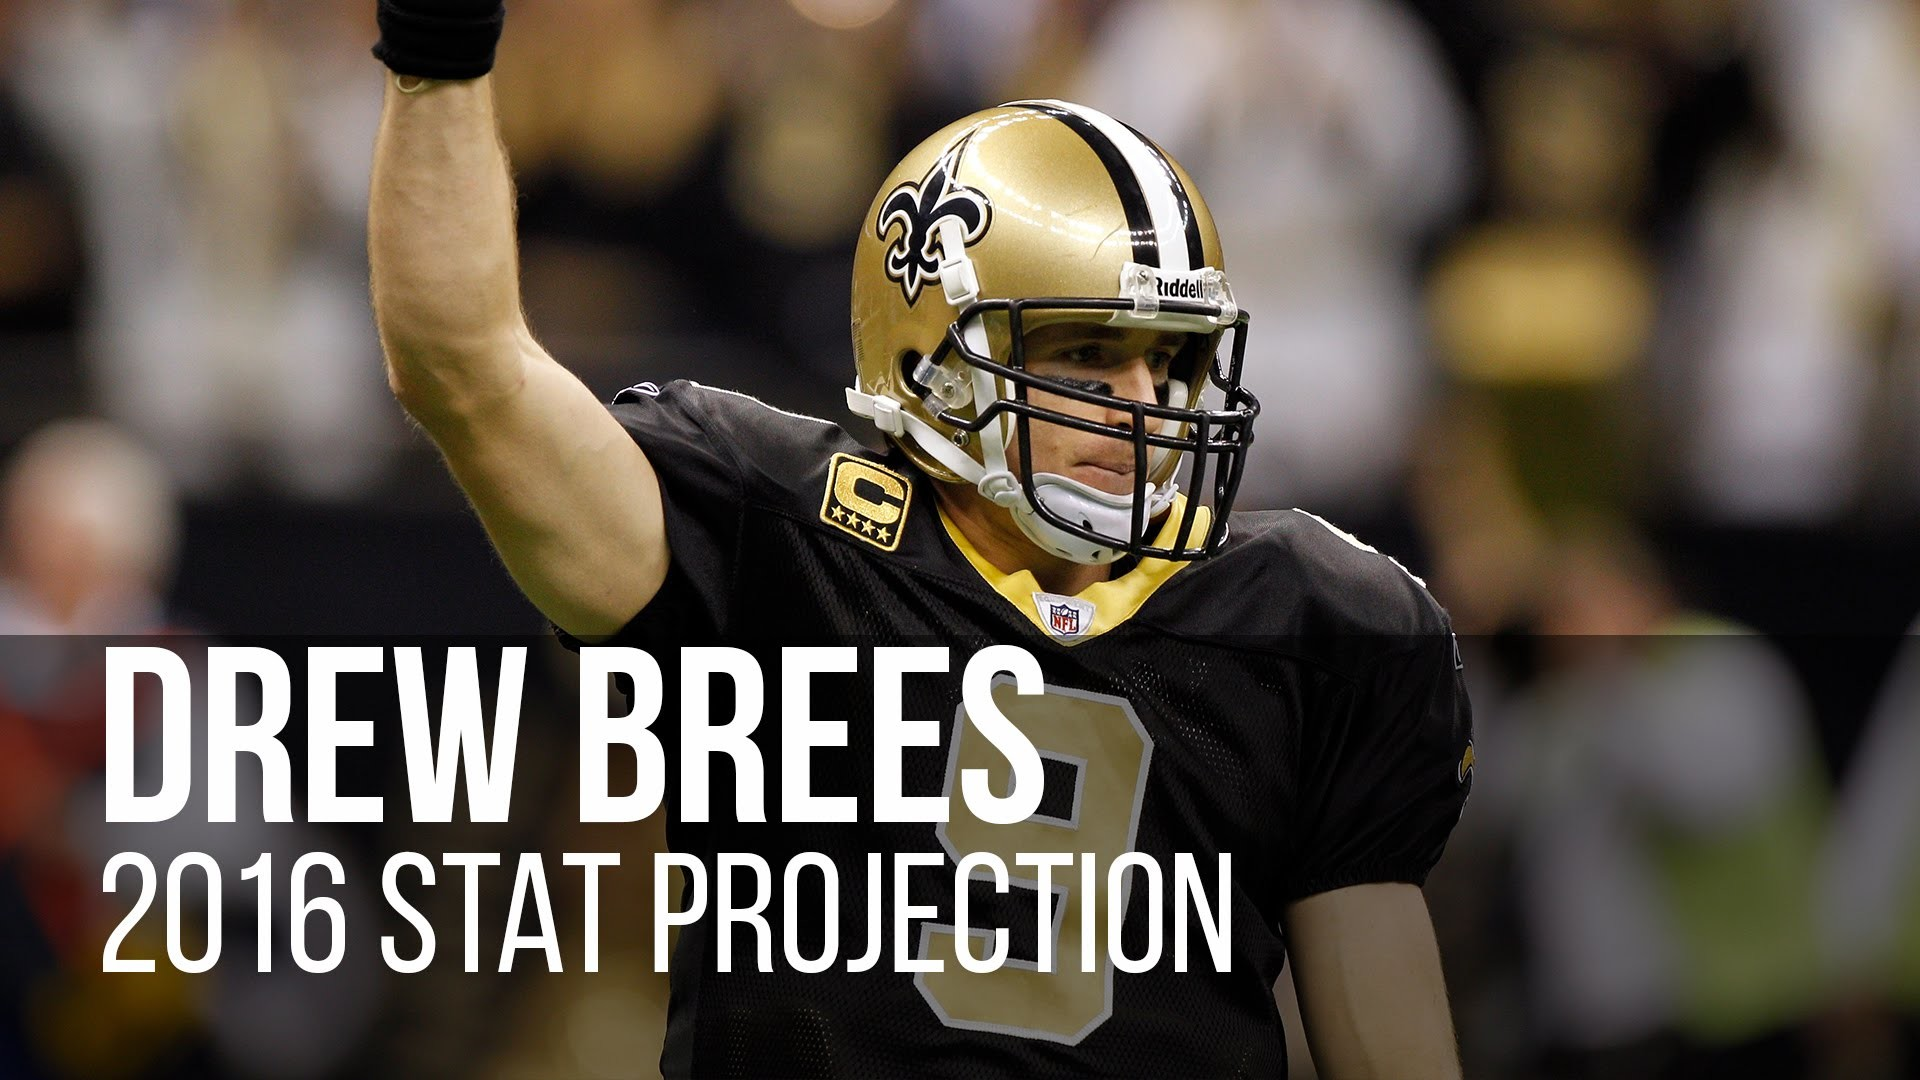 Drew Brees 2016 Stat Projection